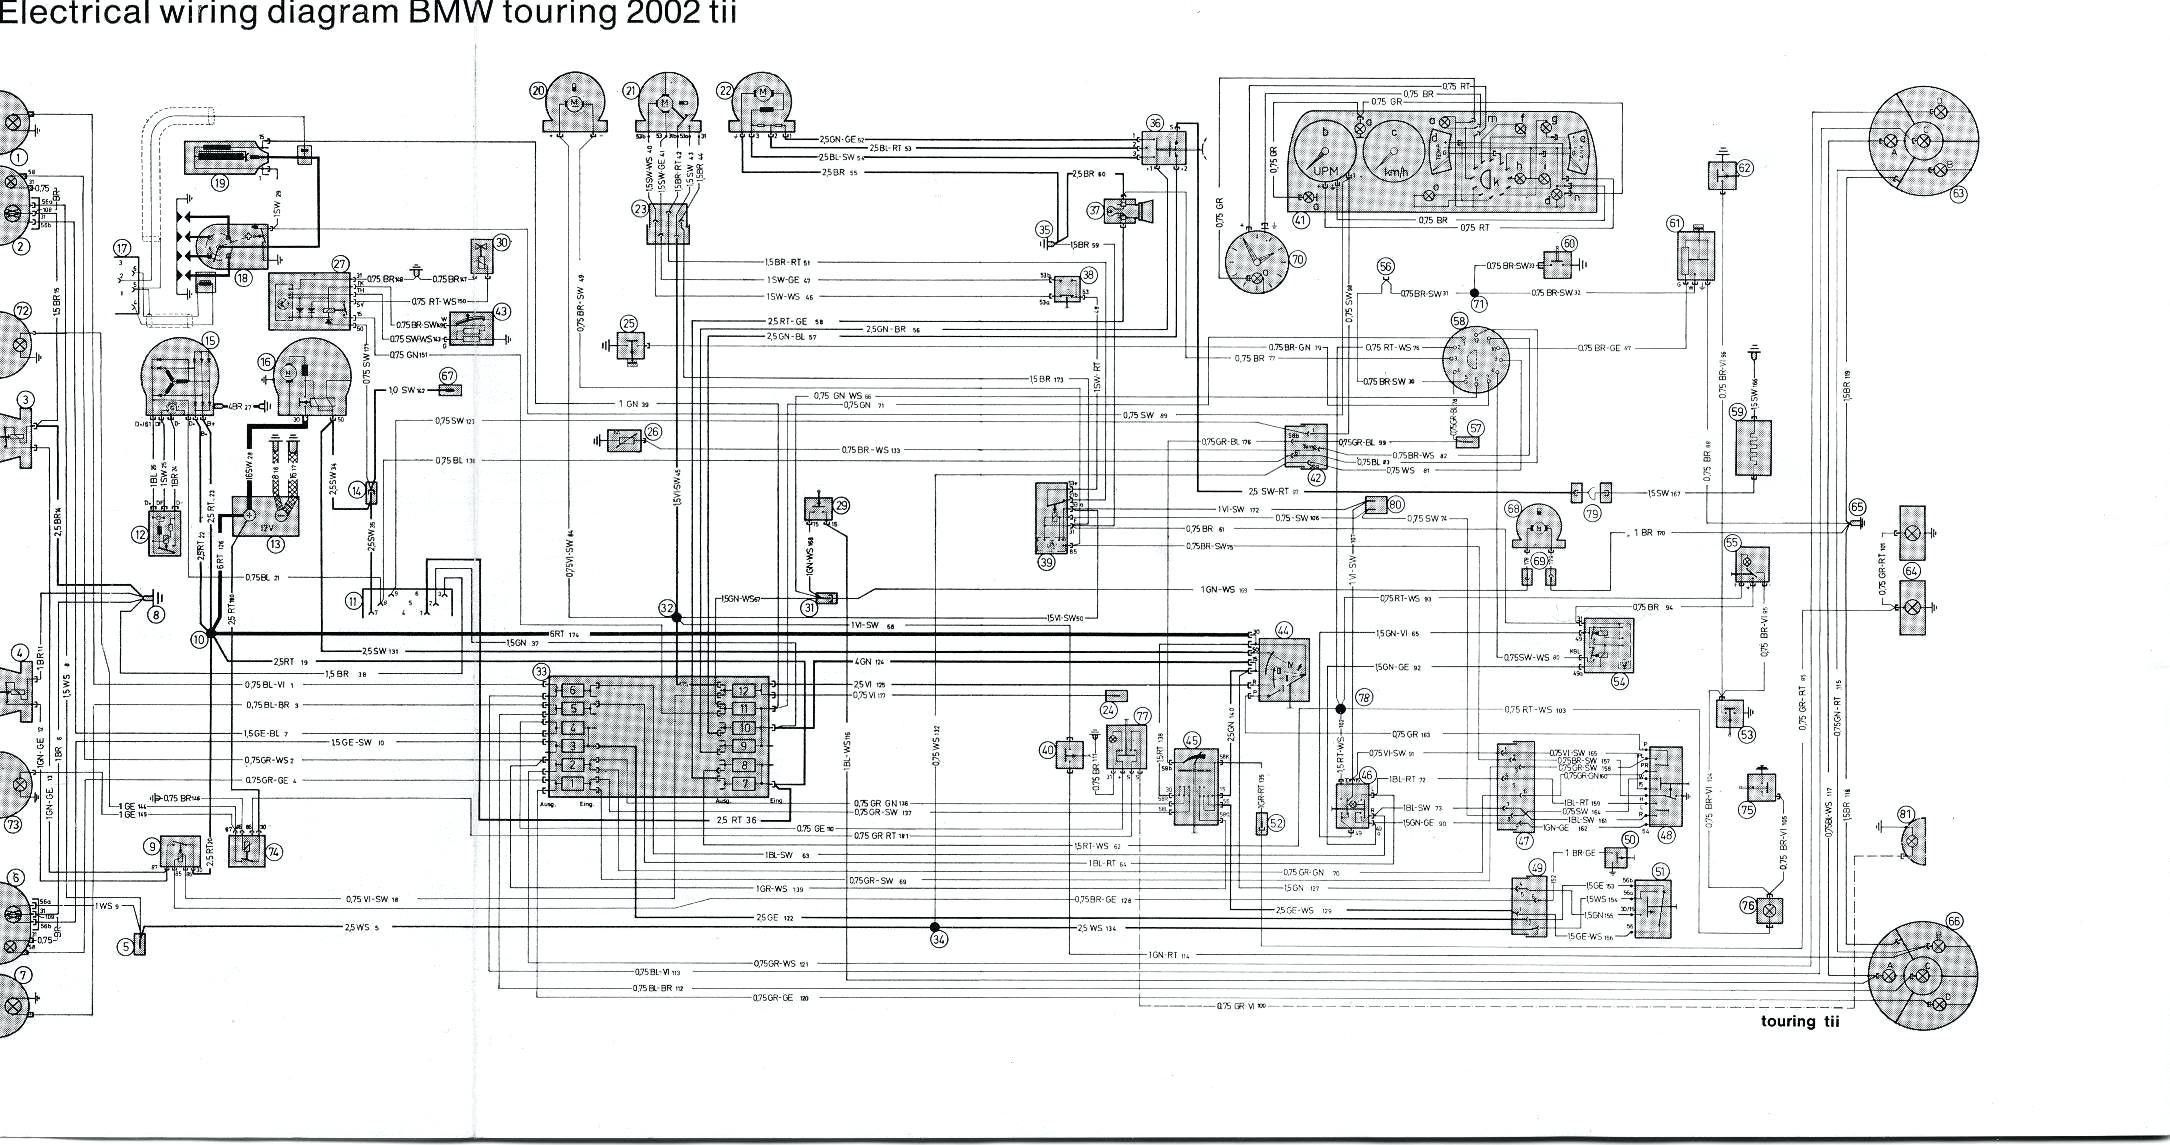 small resolution of new bmw e46 seat wiring diagram diagram diagramtemplatenew bmw e46 seat wiring diagram diagram diagramtemplate diagramsample